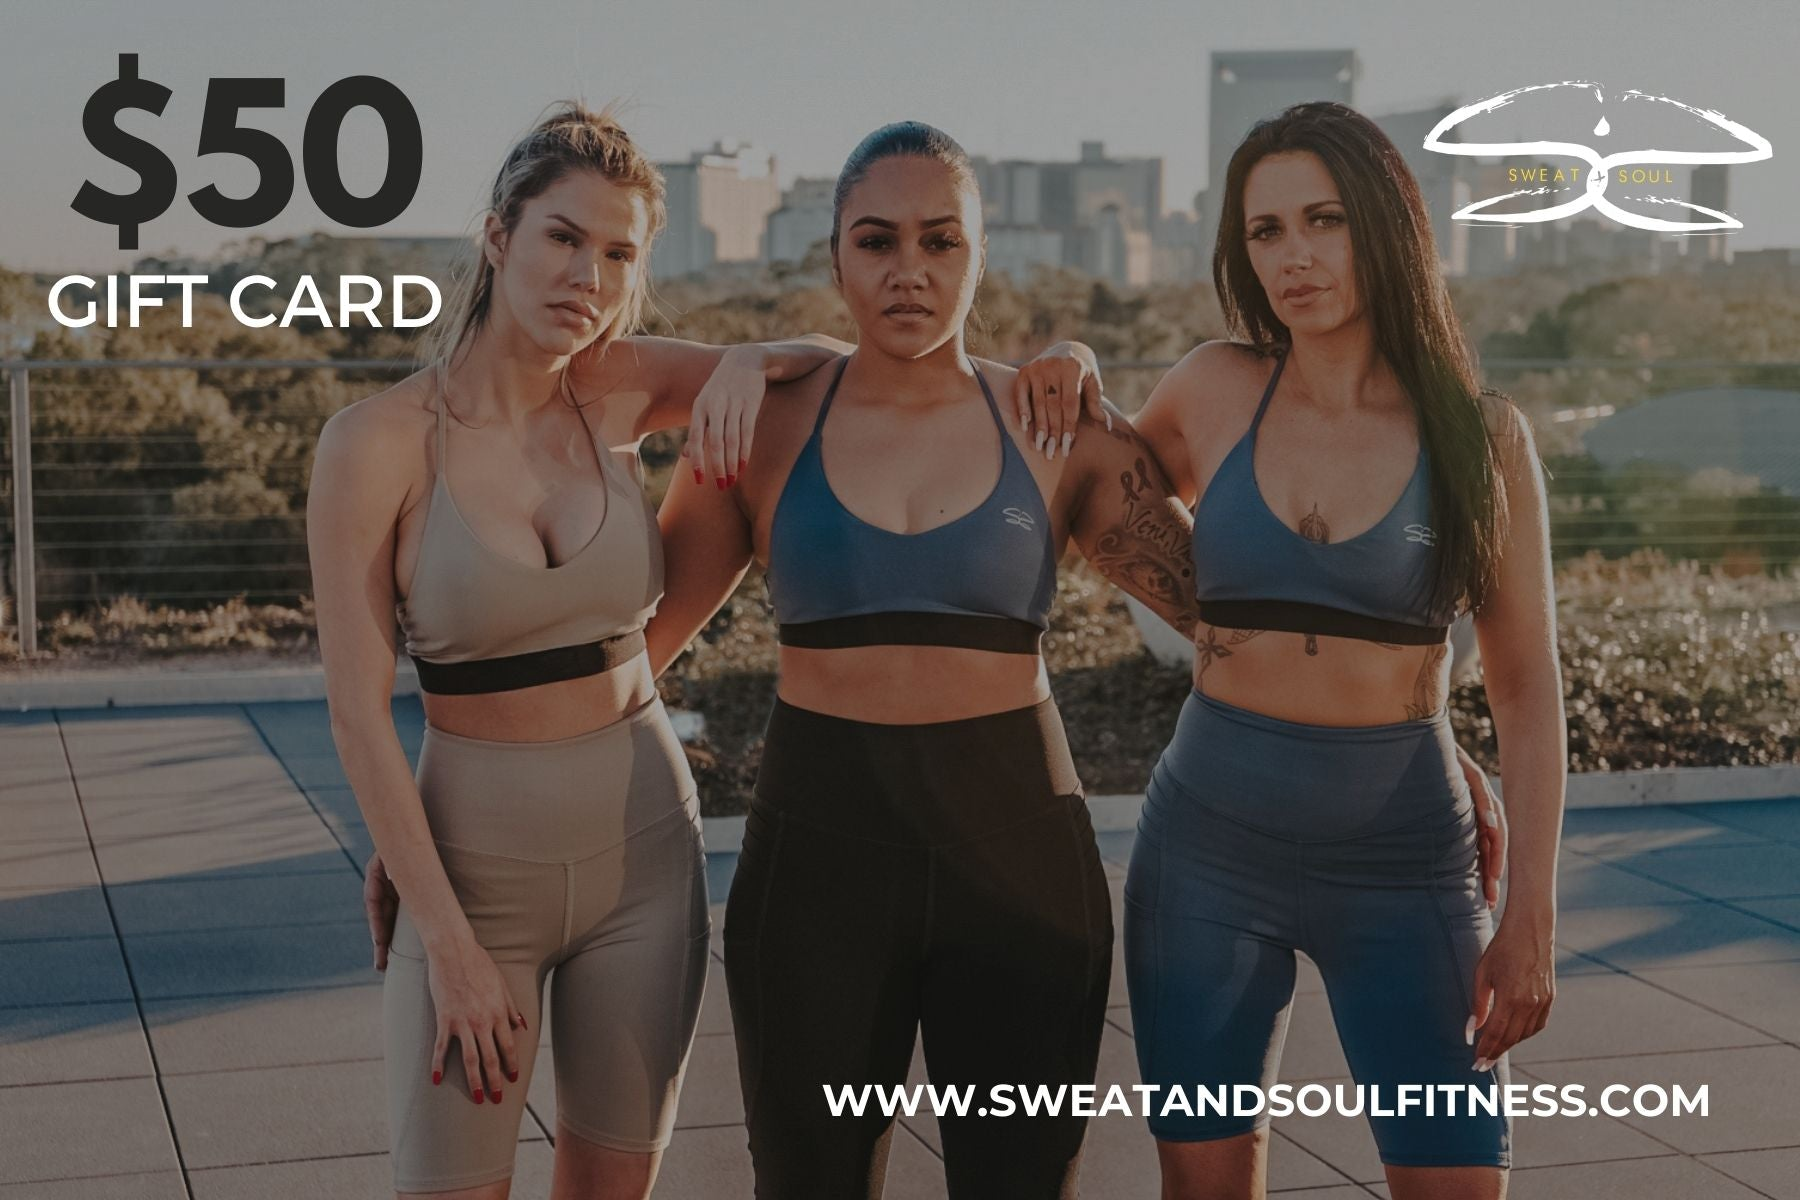 SWEAT + SOUL Gift Card